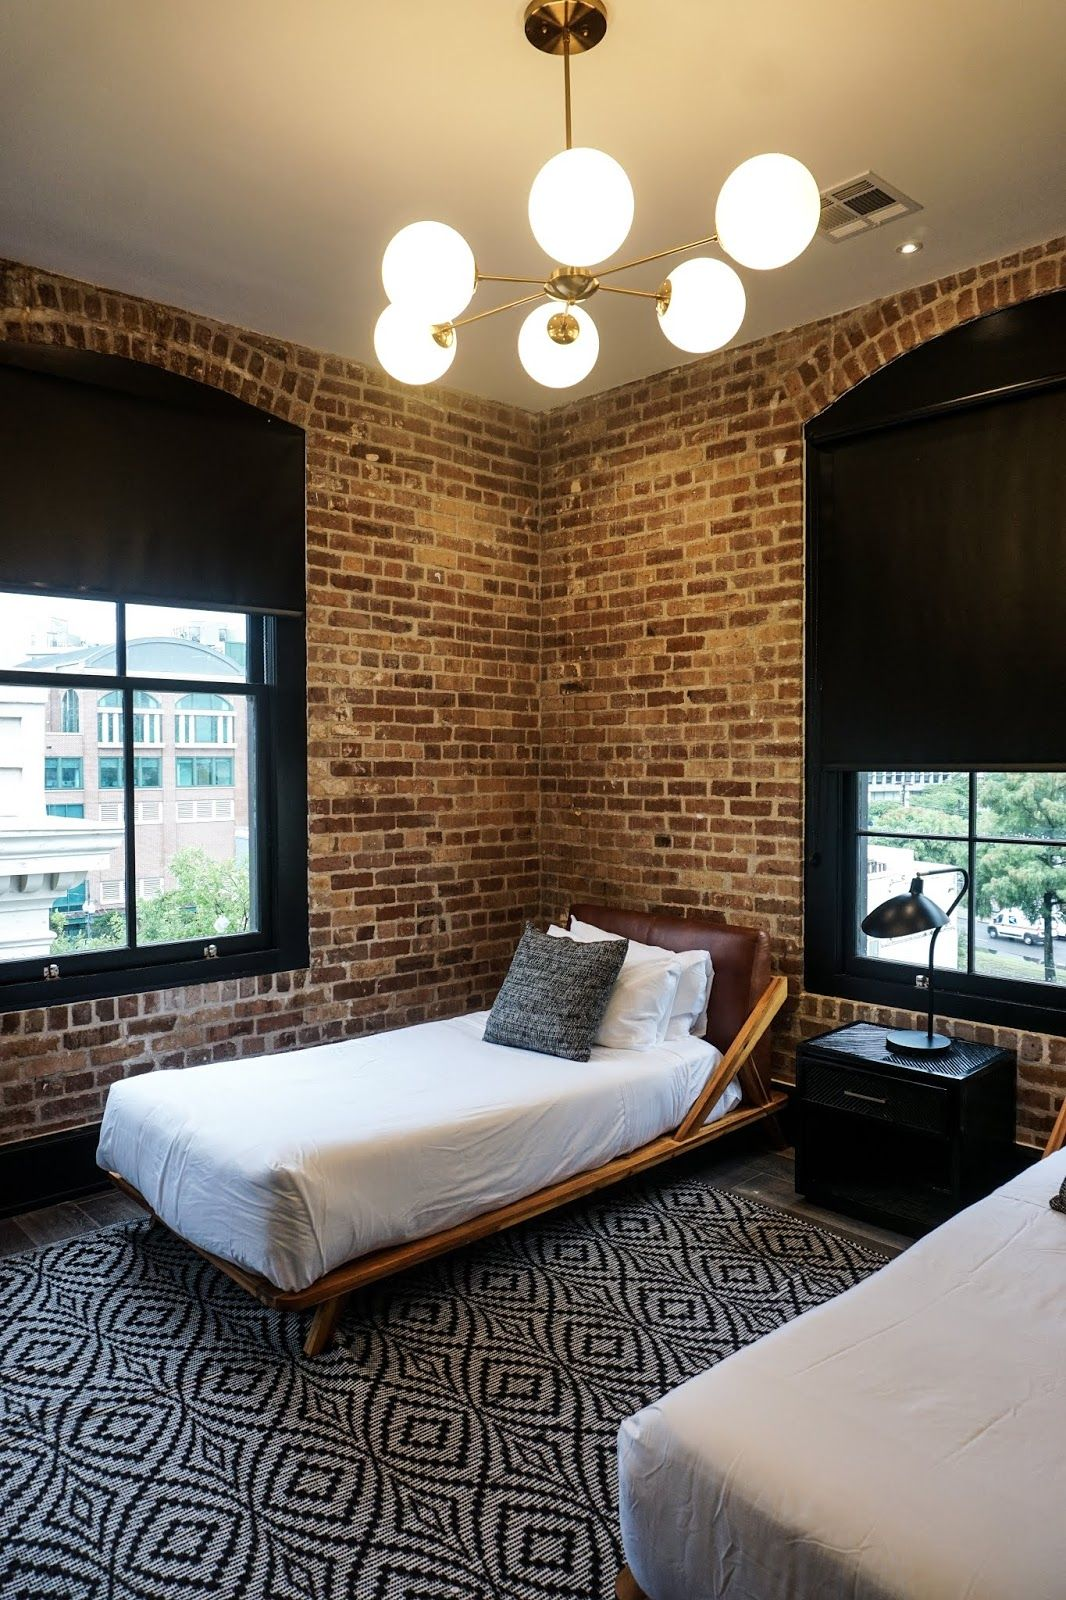 Twin Bed Hotel Room: The Best Place To Stay In New Orleans For Groups: Domio